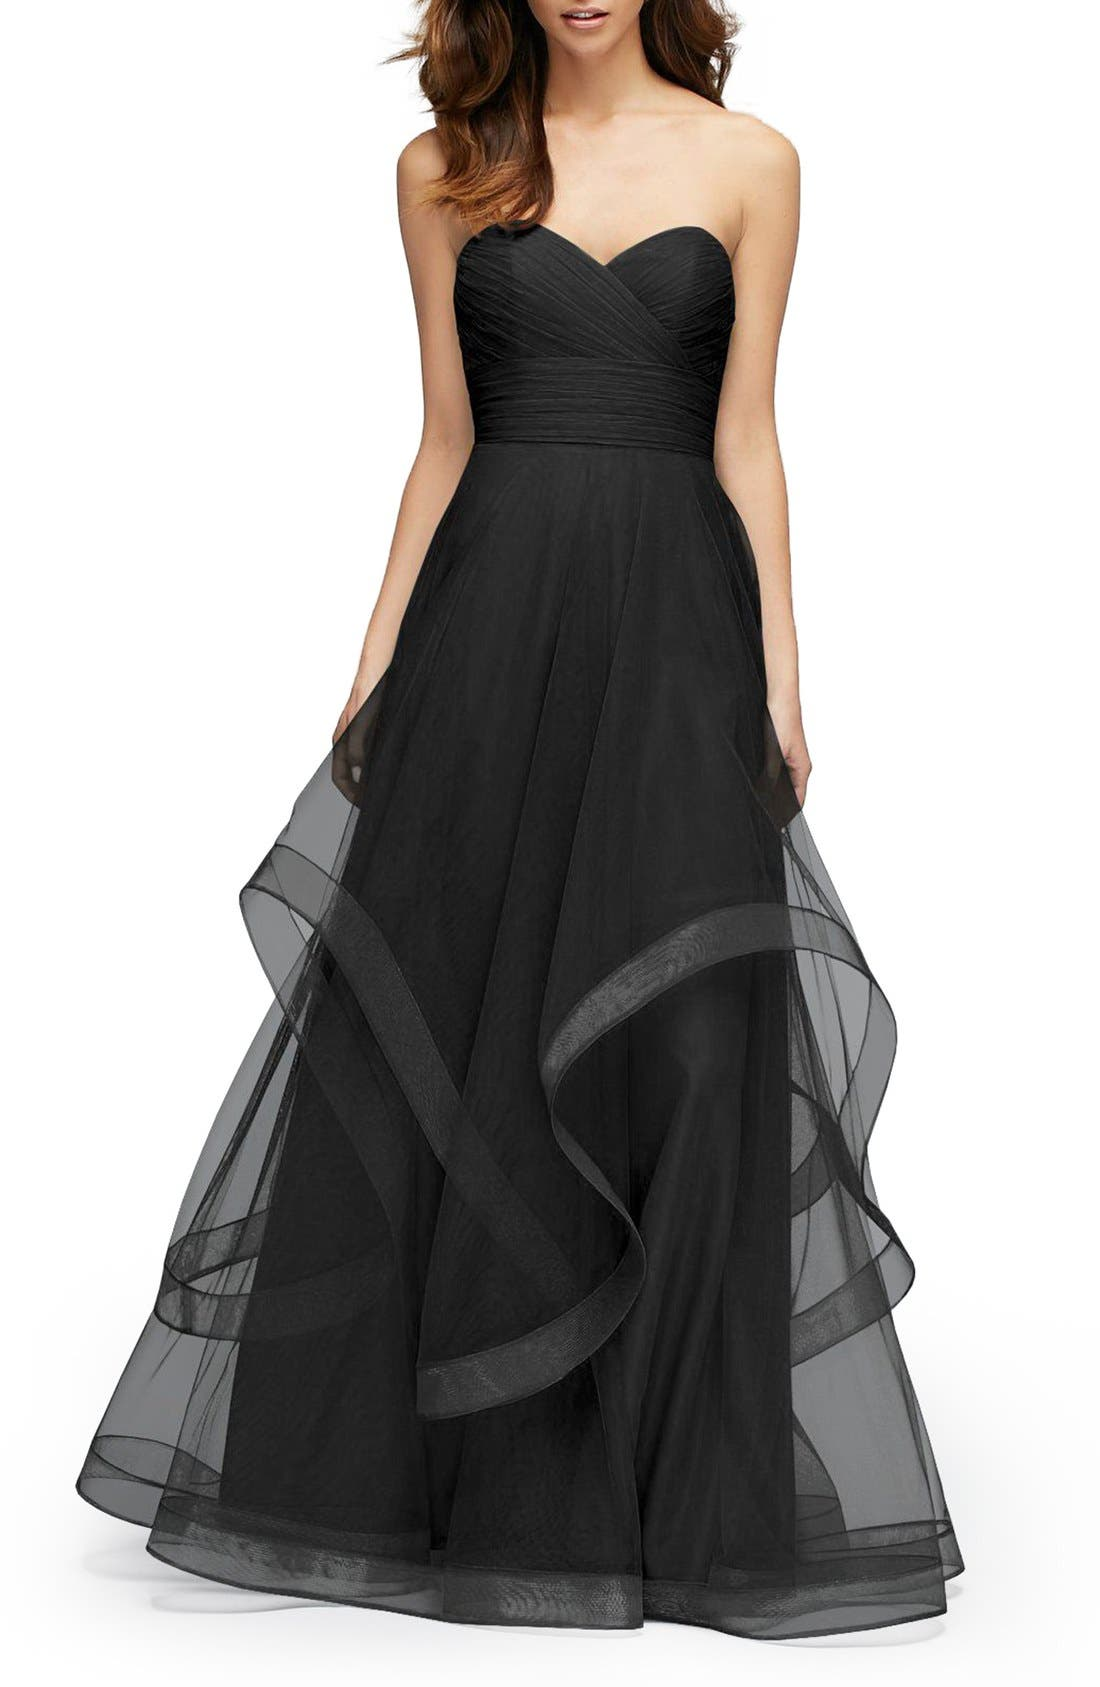 Main Image - Watters 'Florian' Strapless Horsehair Ruffle Tulle A-Line Gown